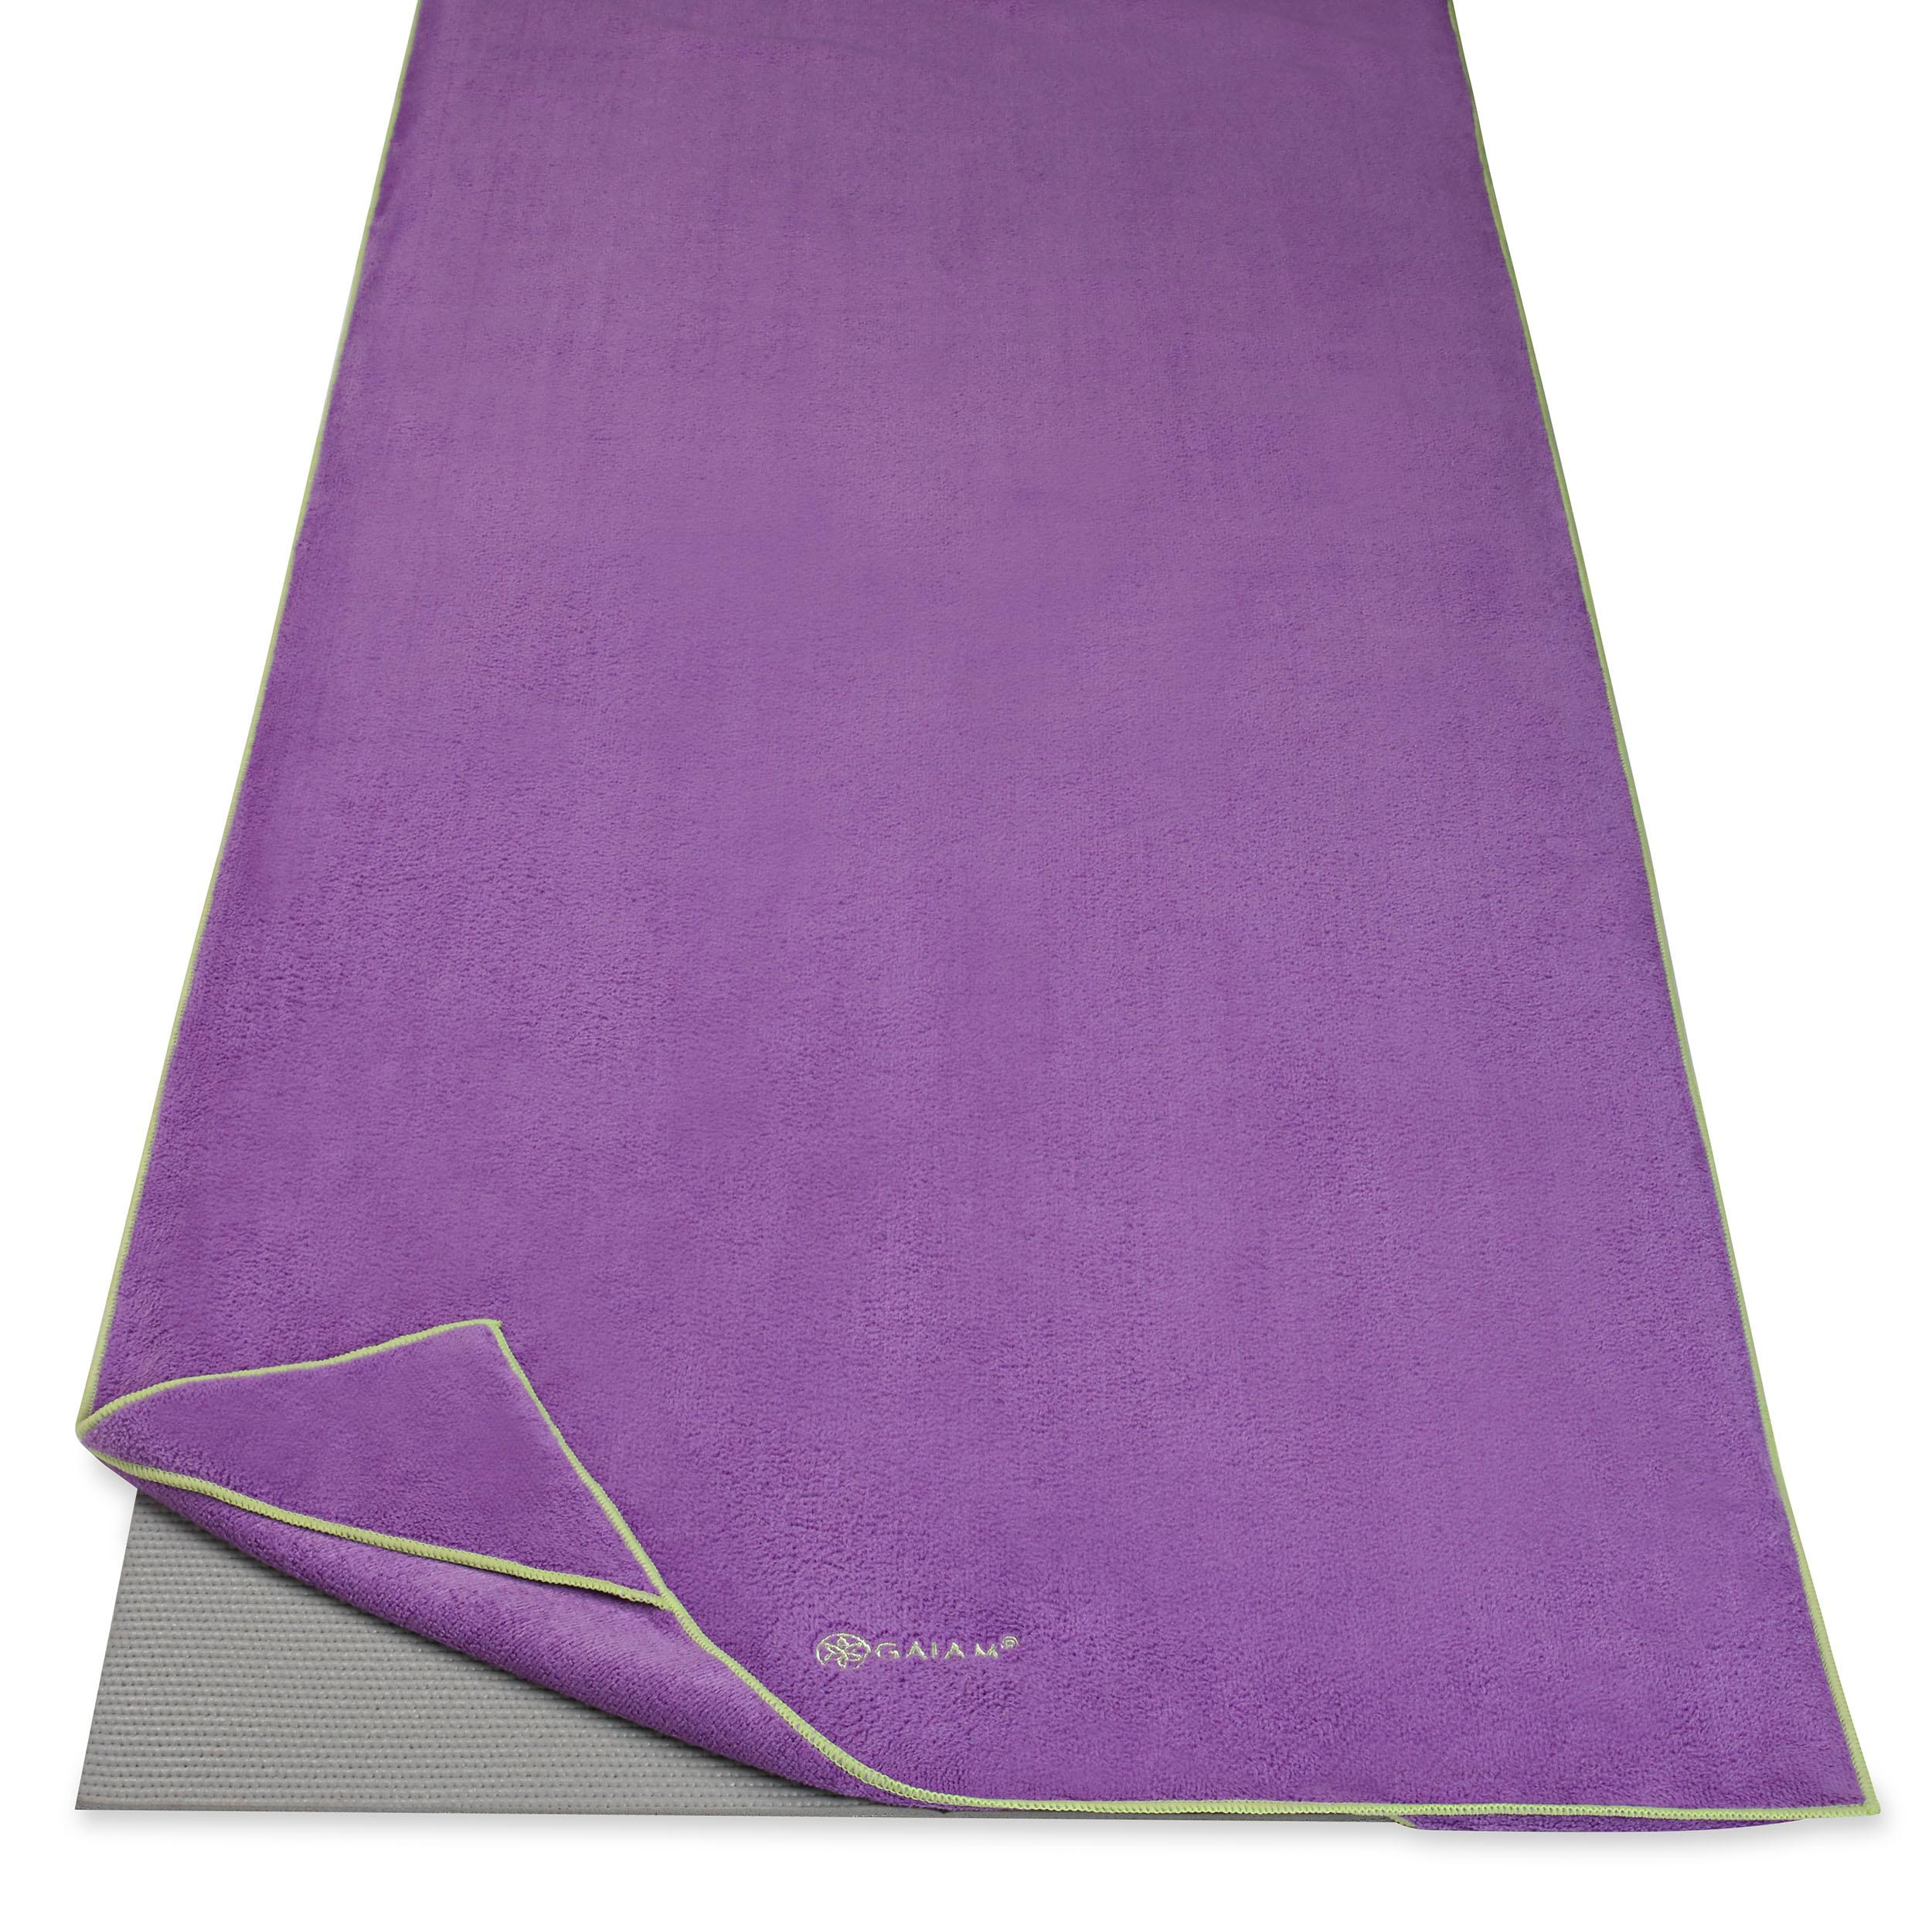 Amazon.com : Gaiam Stay Put Yoga Towel Mat Size Yoga Mat